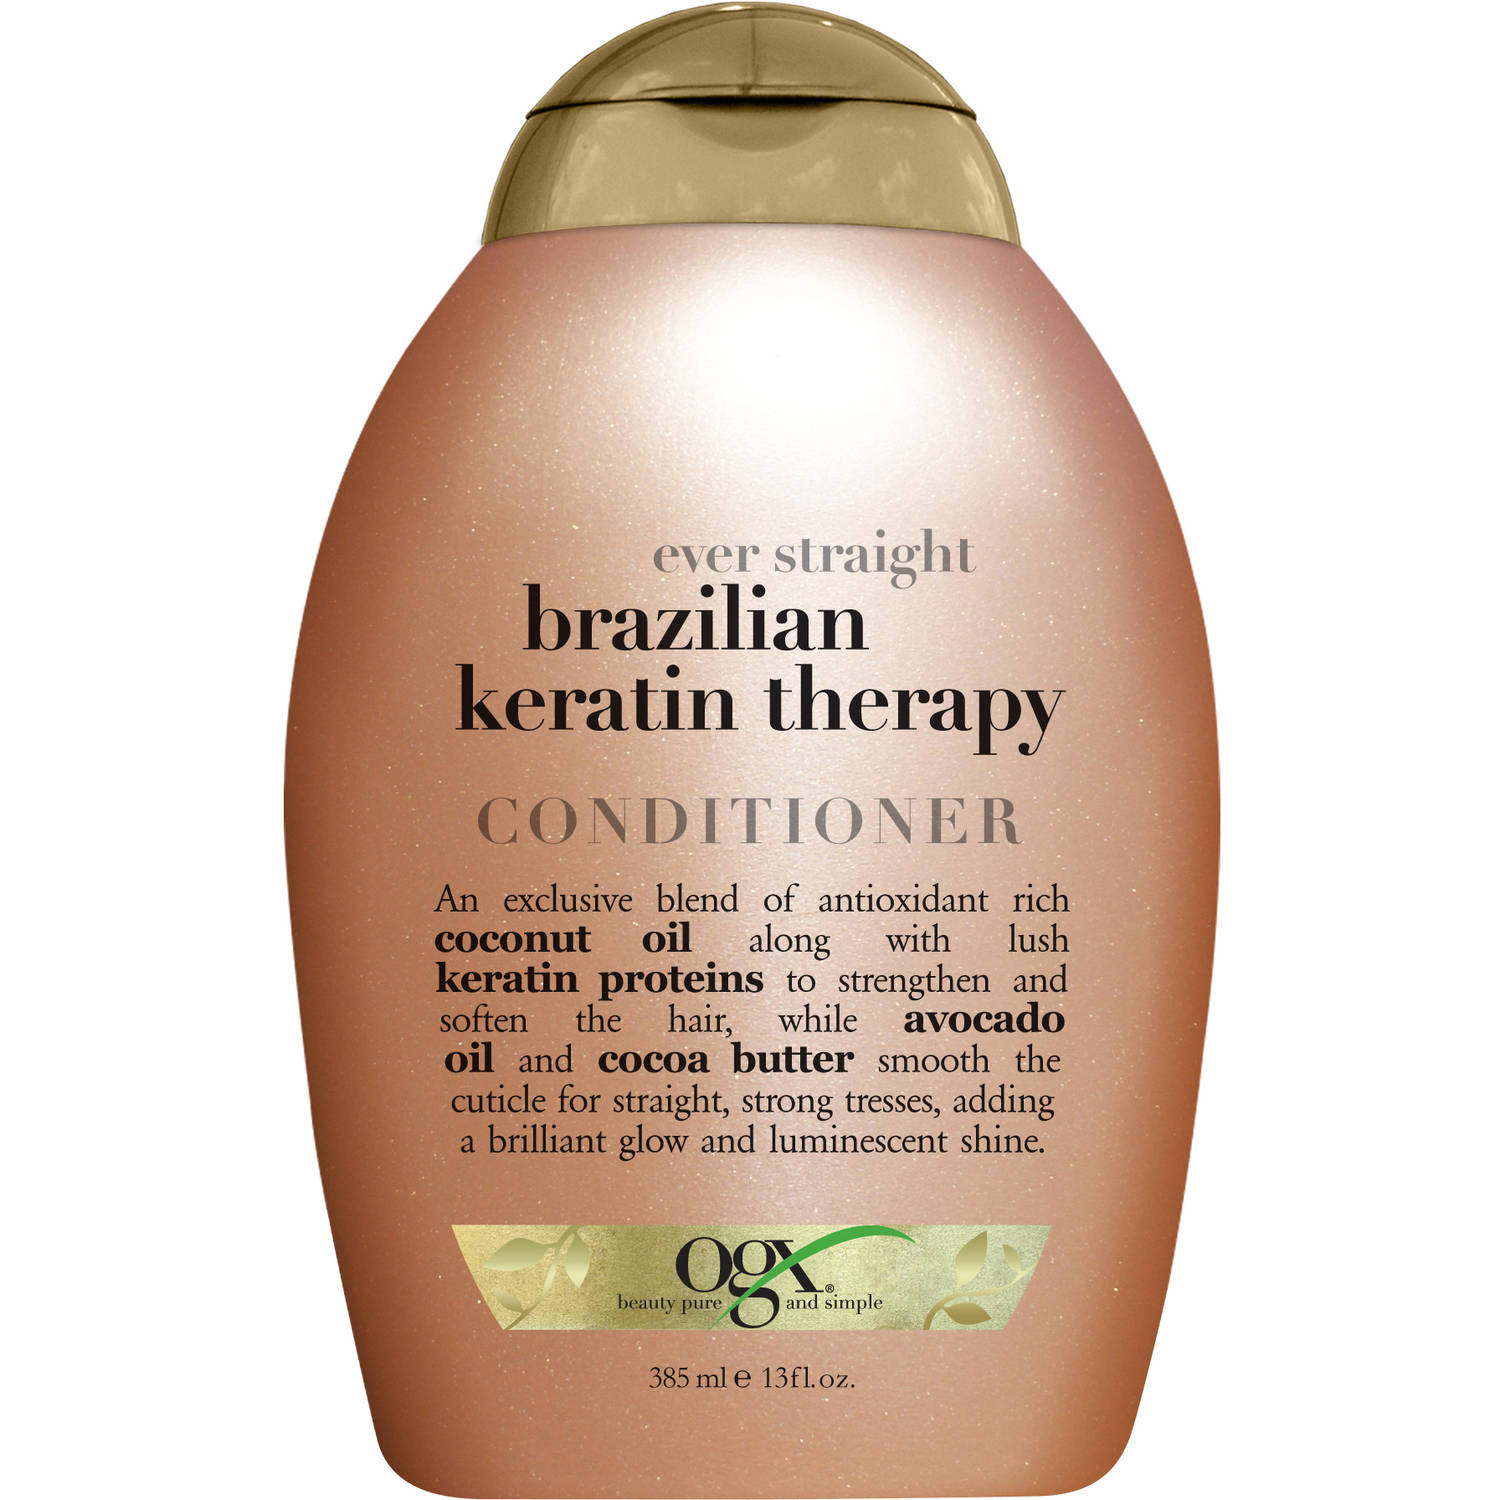 OGX Ever Straight Brazilian Keratin Therapy Conditioner, 13 oz